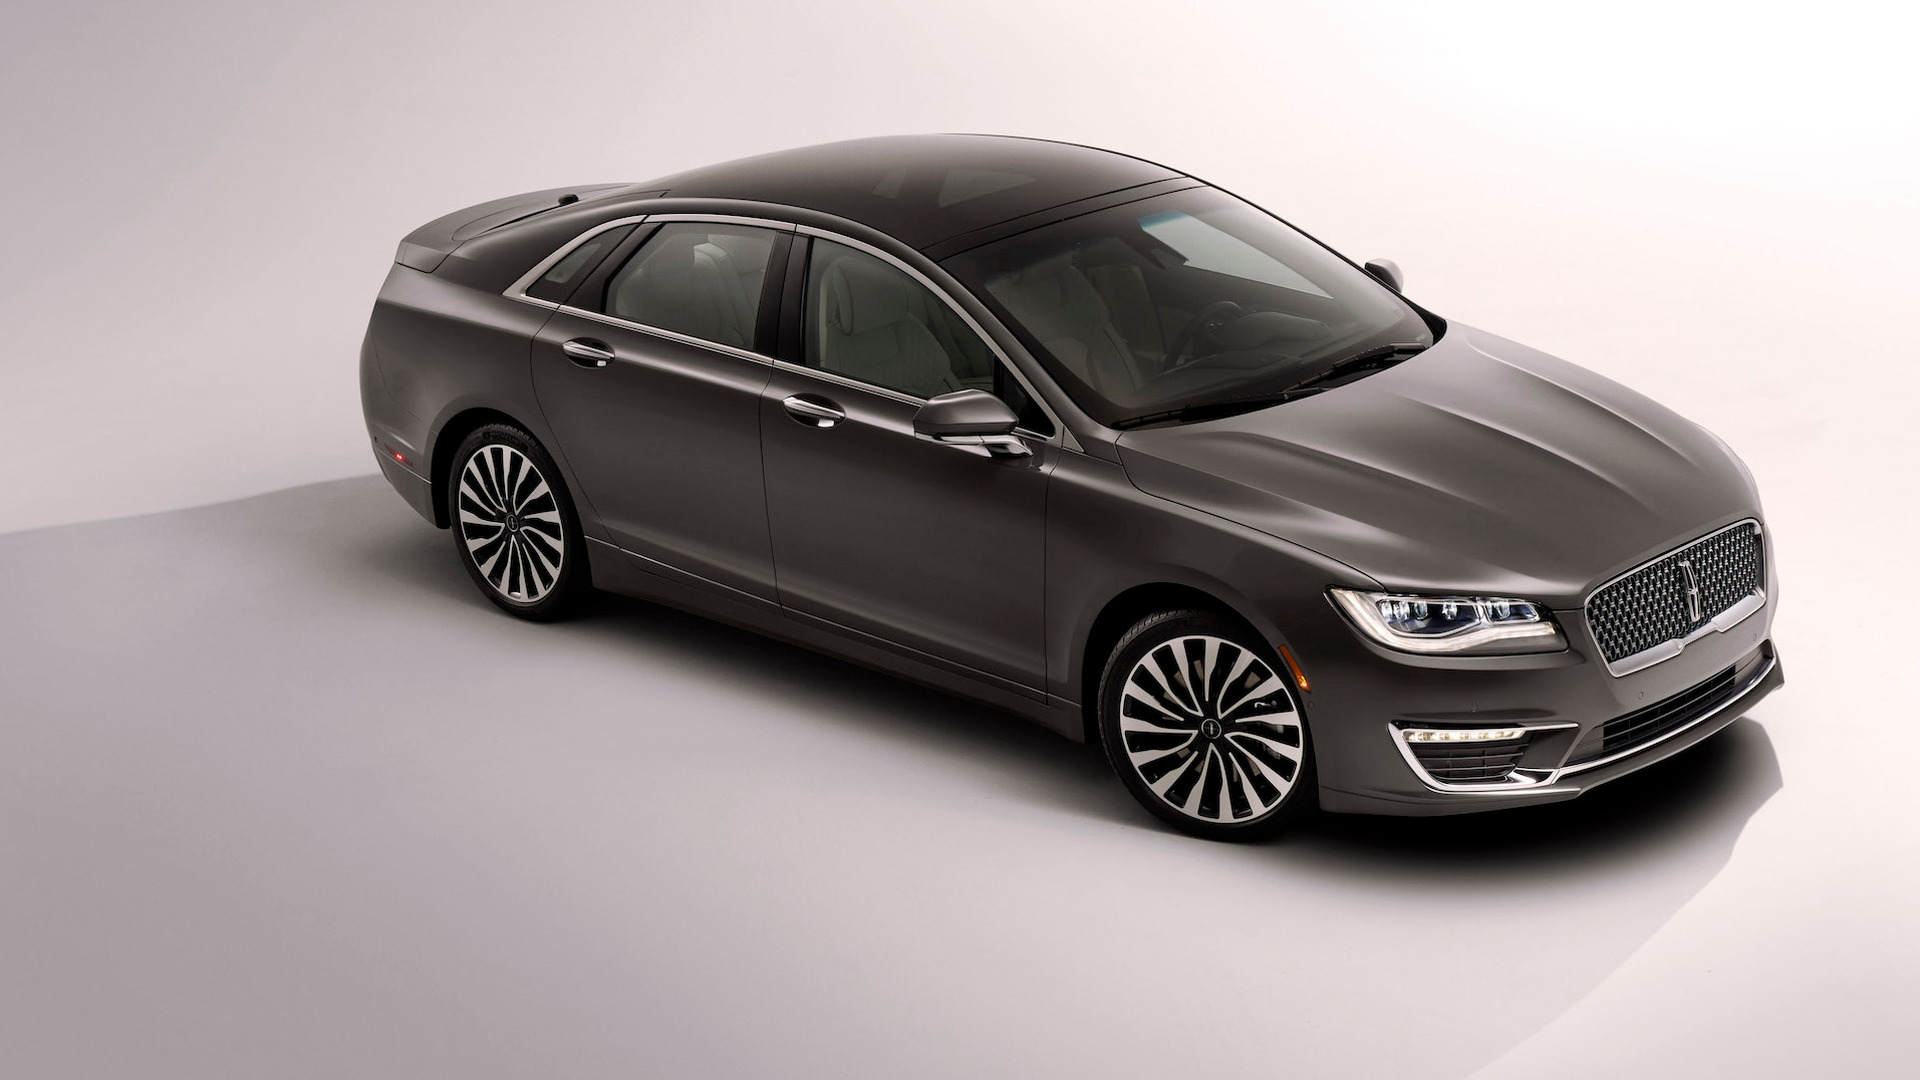 2020 Spy Shots Lincoln Mkz Sedan Specs and Review